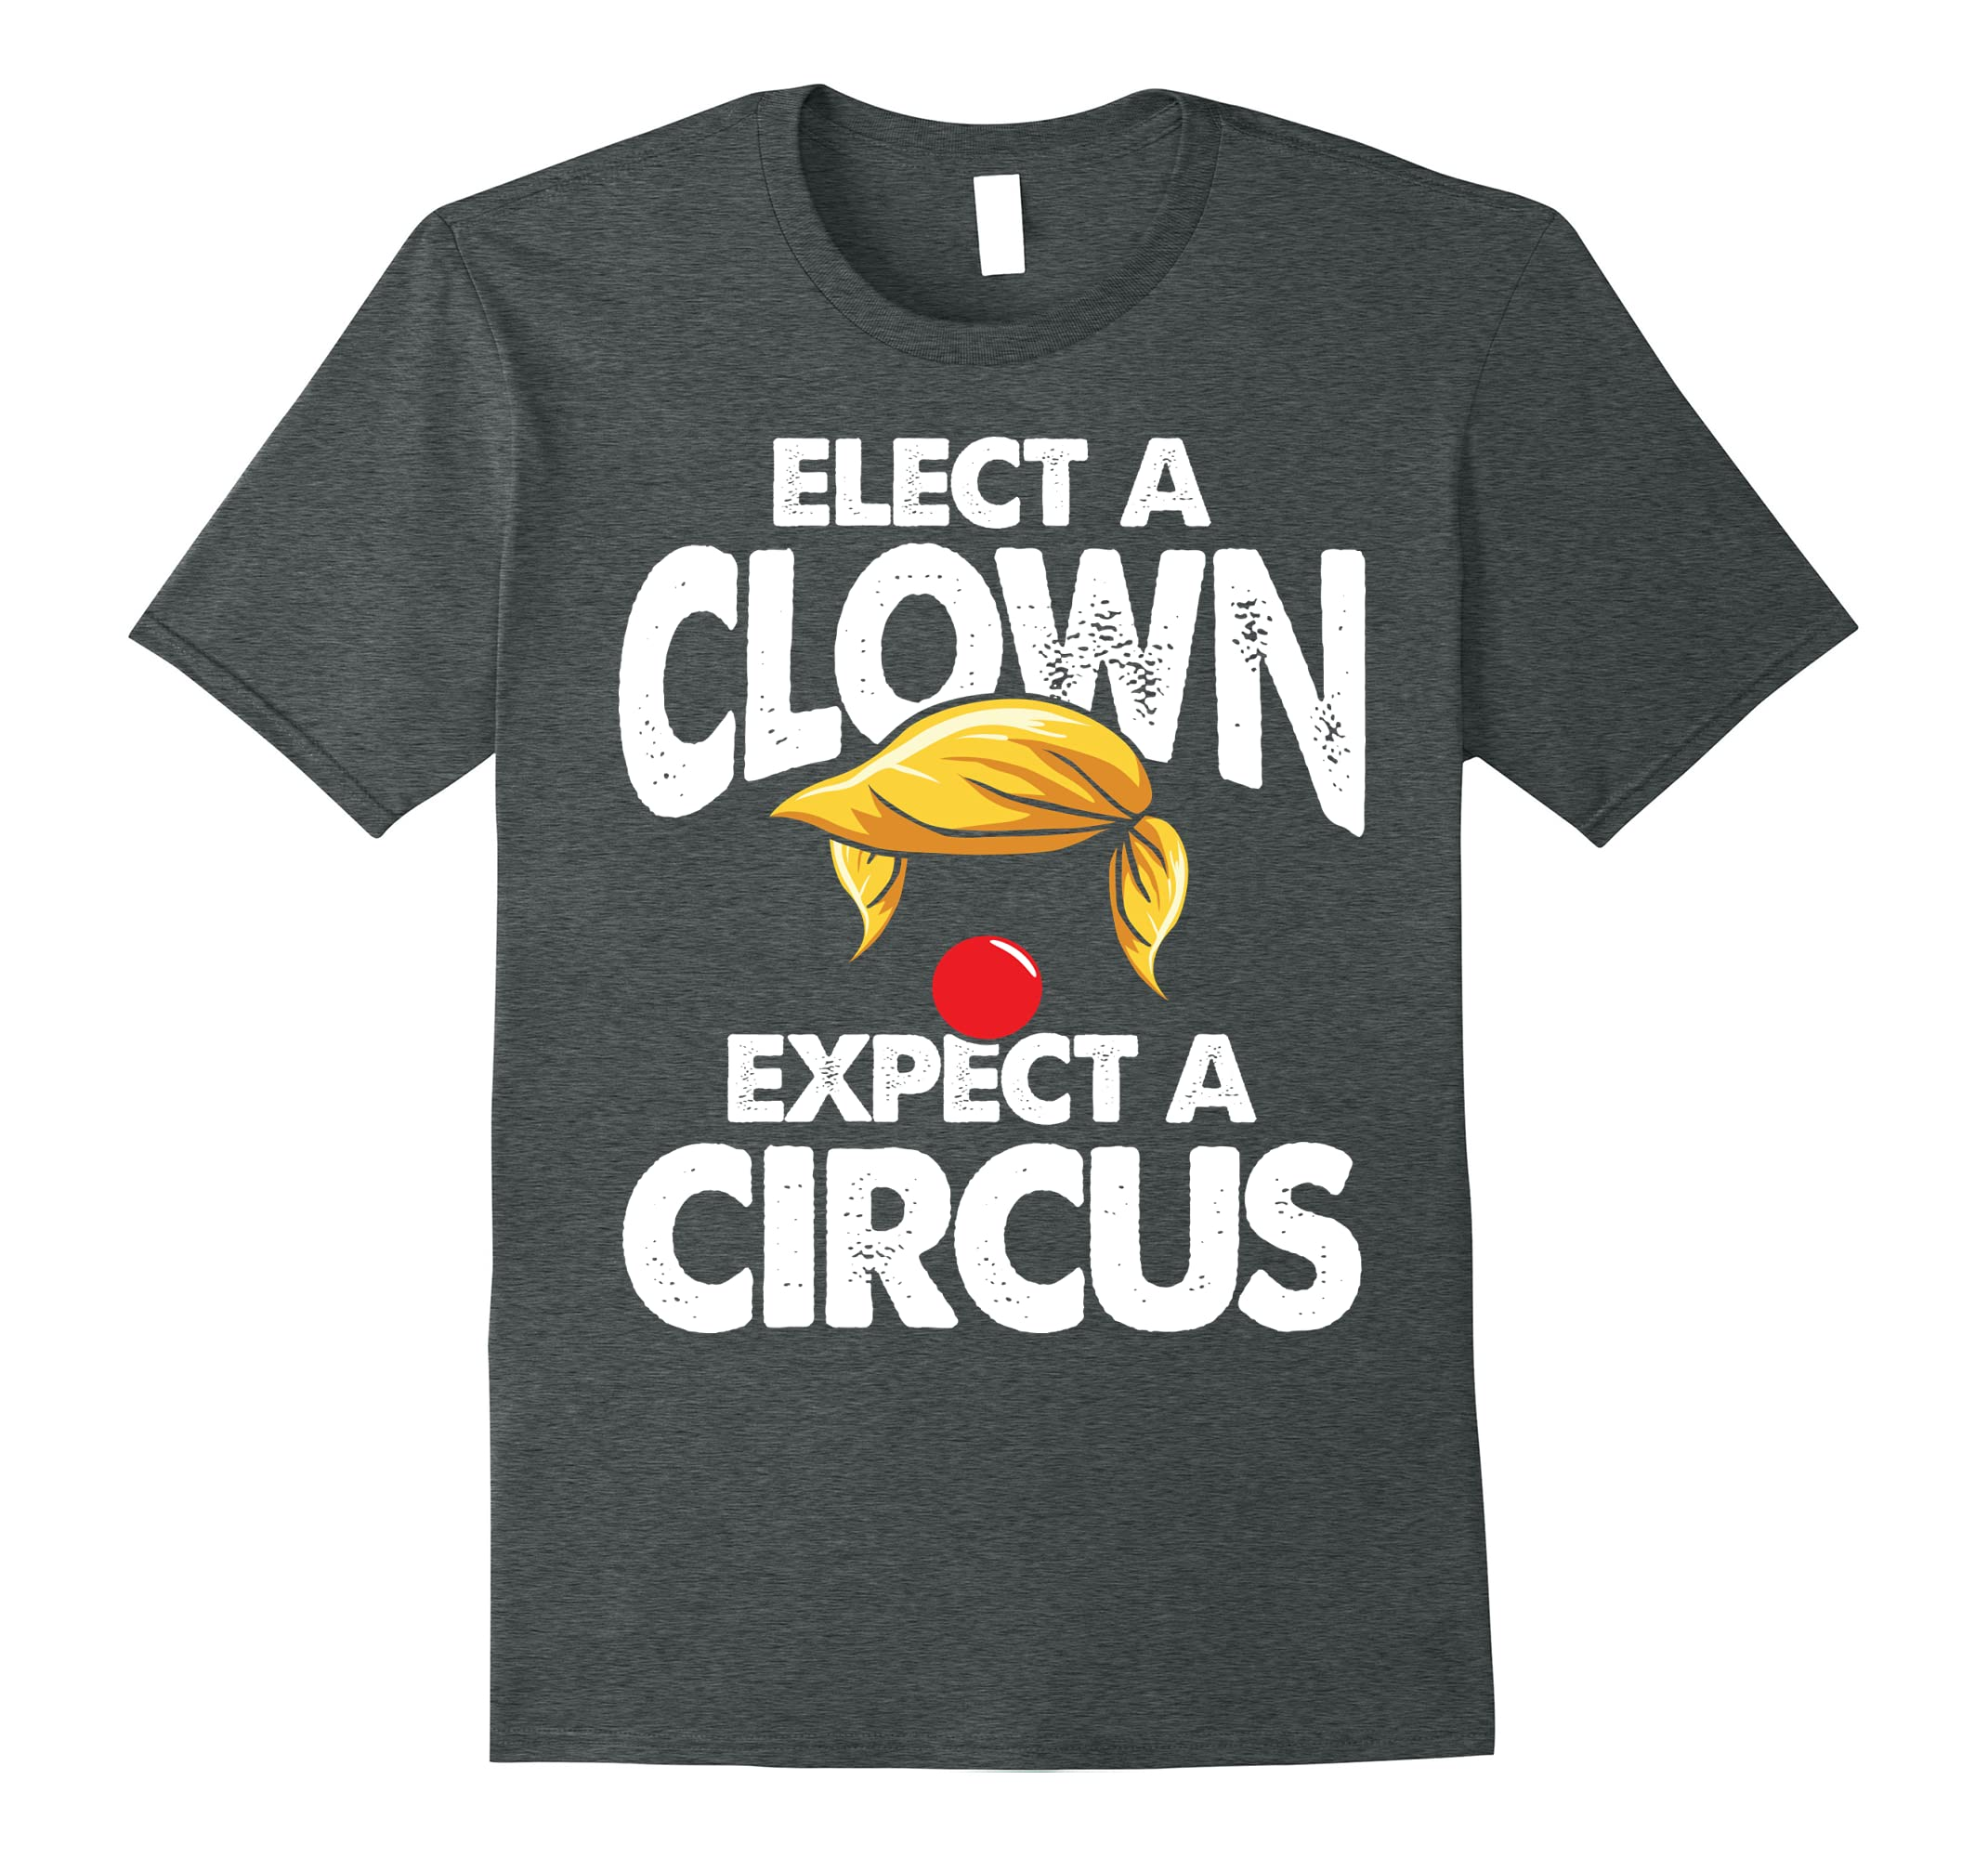 Elect A Clown Expect A Circus Funny Anti Donald T-Shirt-ah my shirt one gift